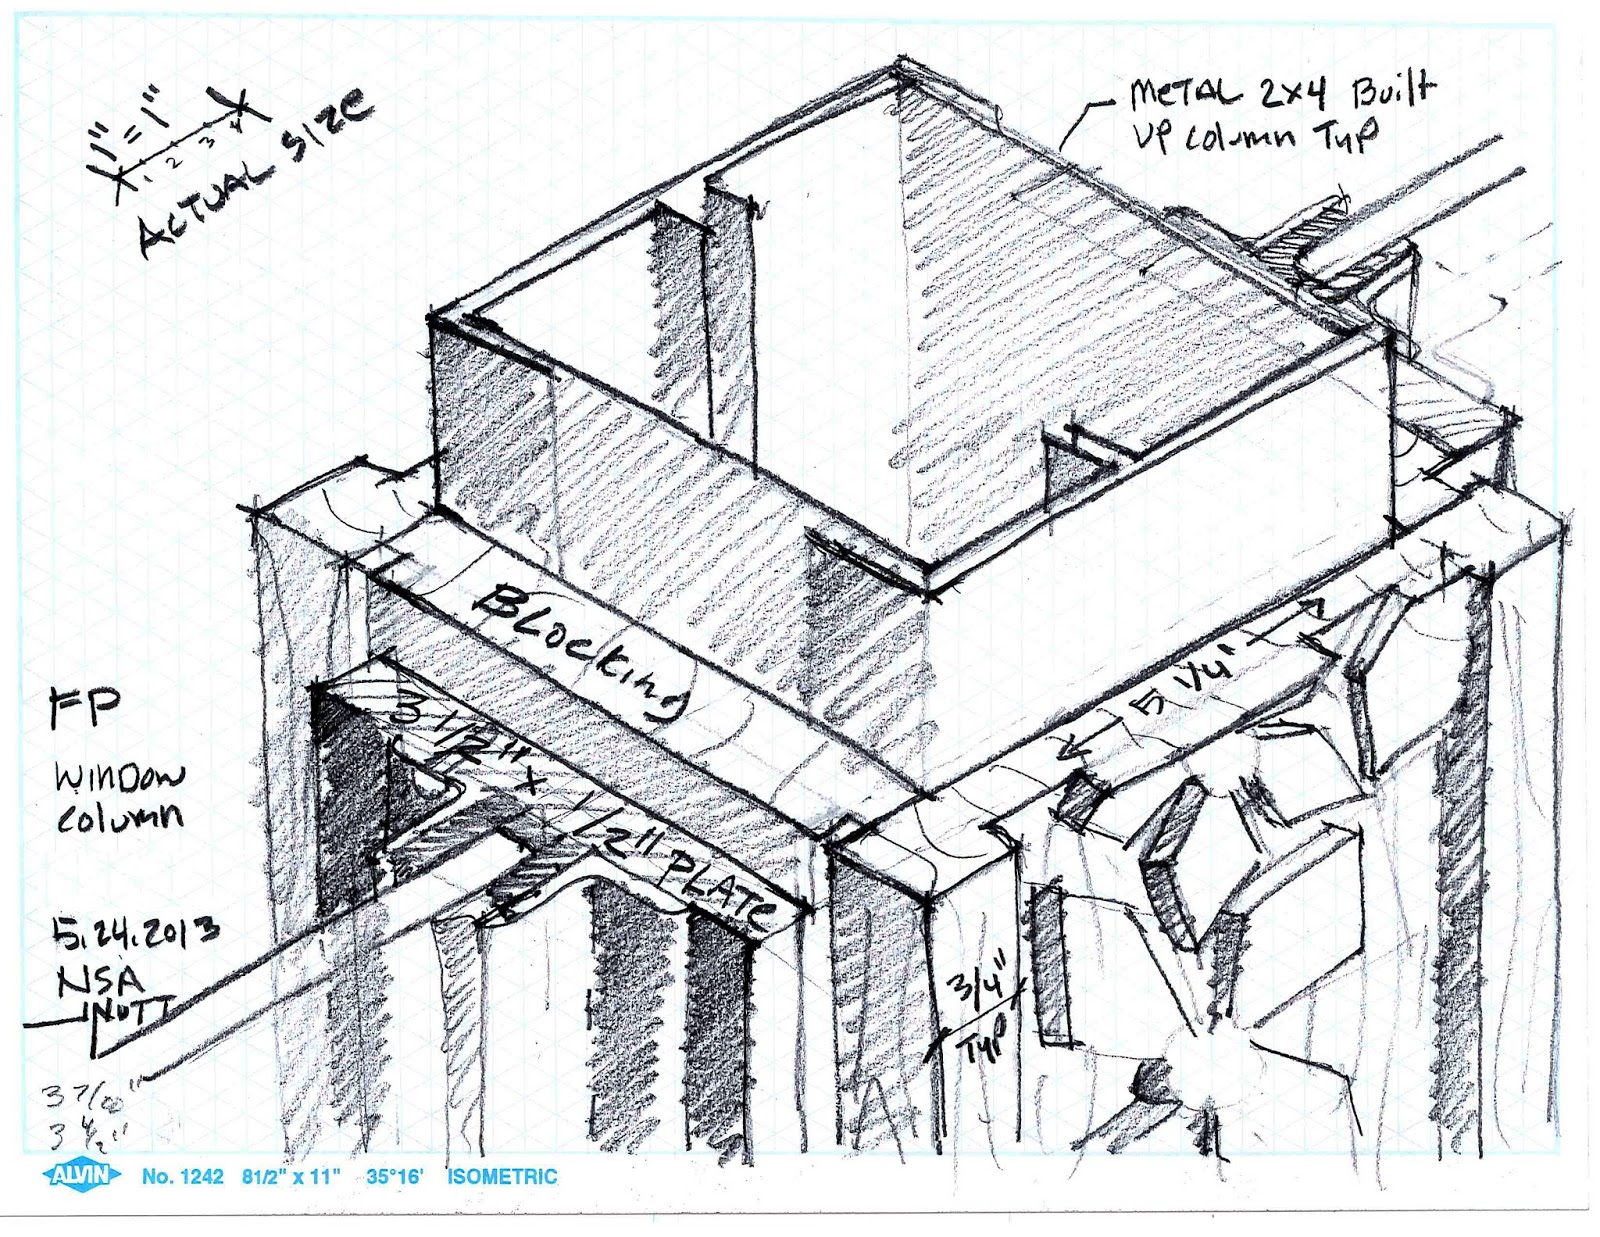 Nutt Draws...: Sketching at work